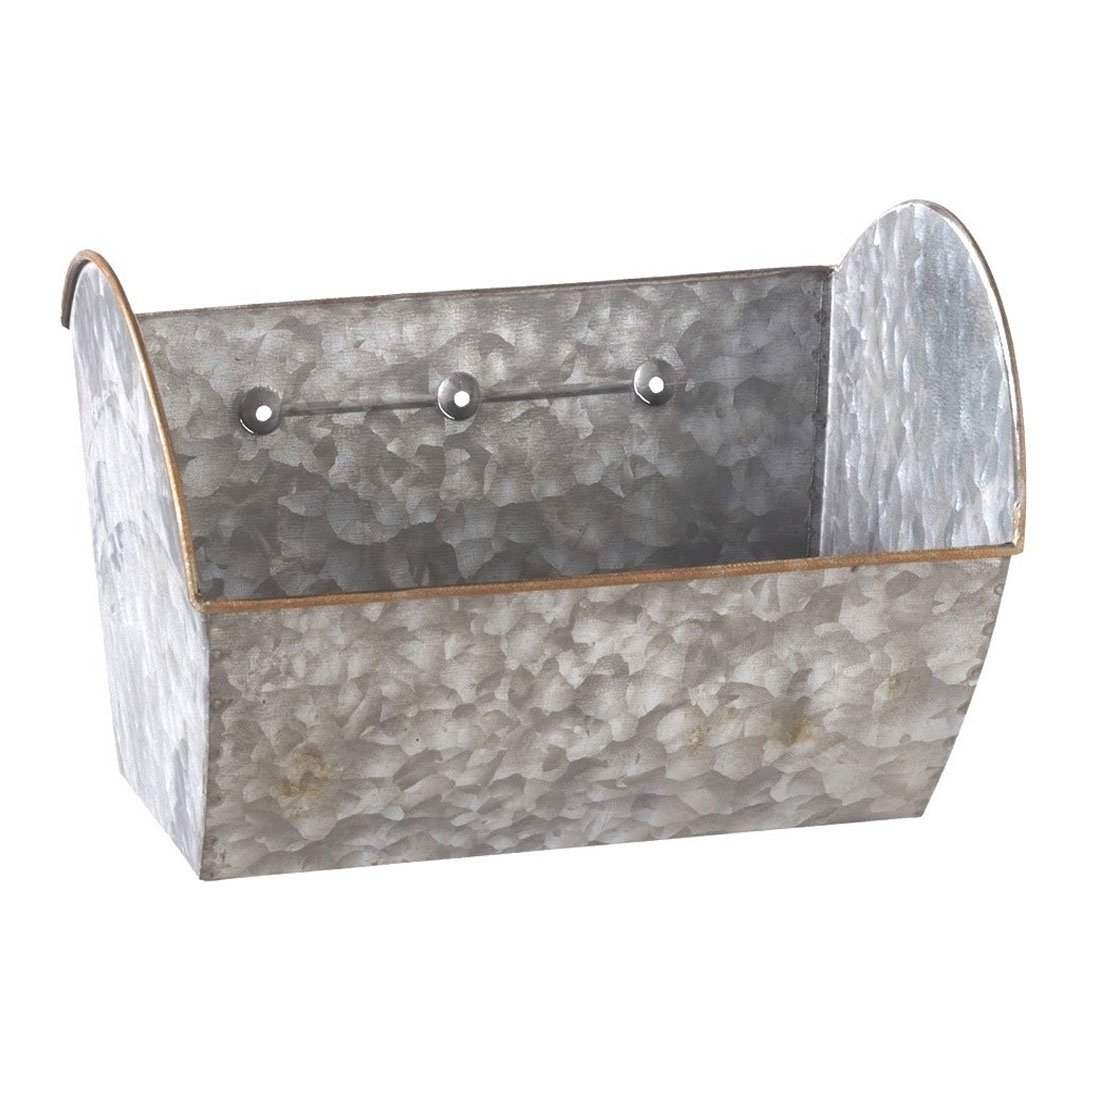 "Midwest CBK 8.5"" x 5.5"" Galvanized Metal Hanging Wall Planter"